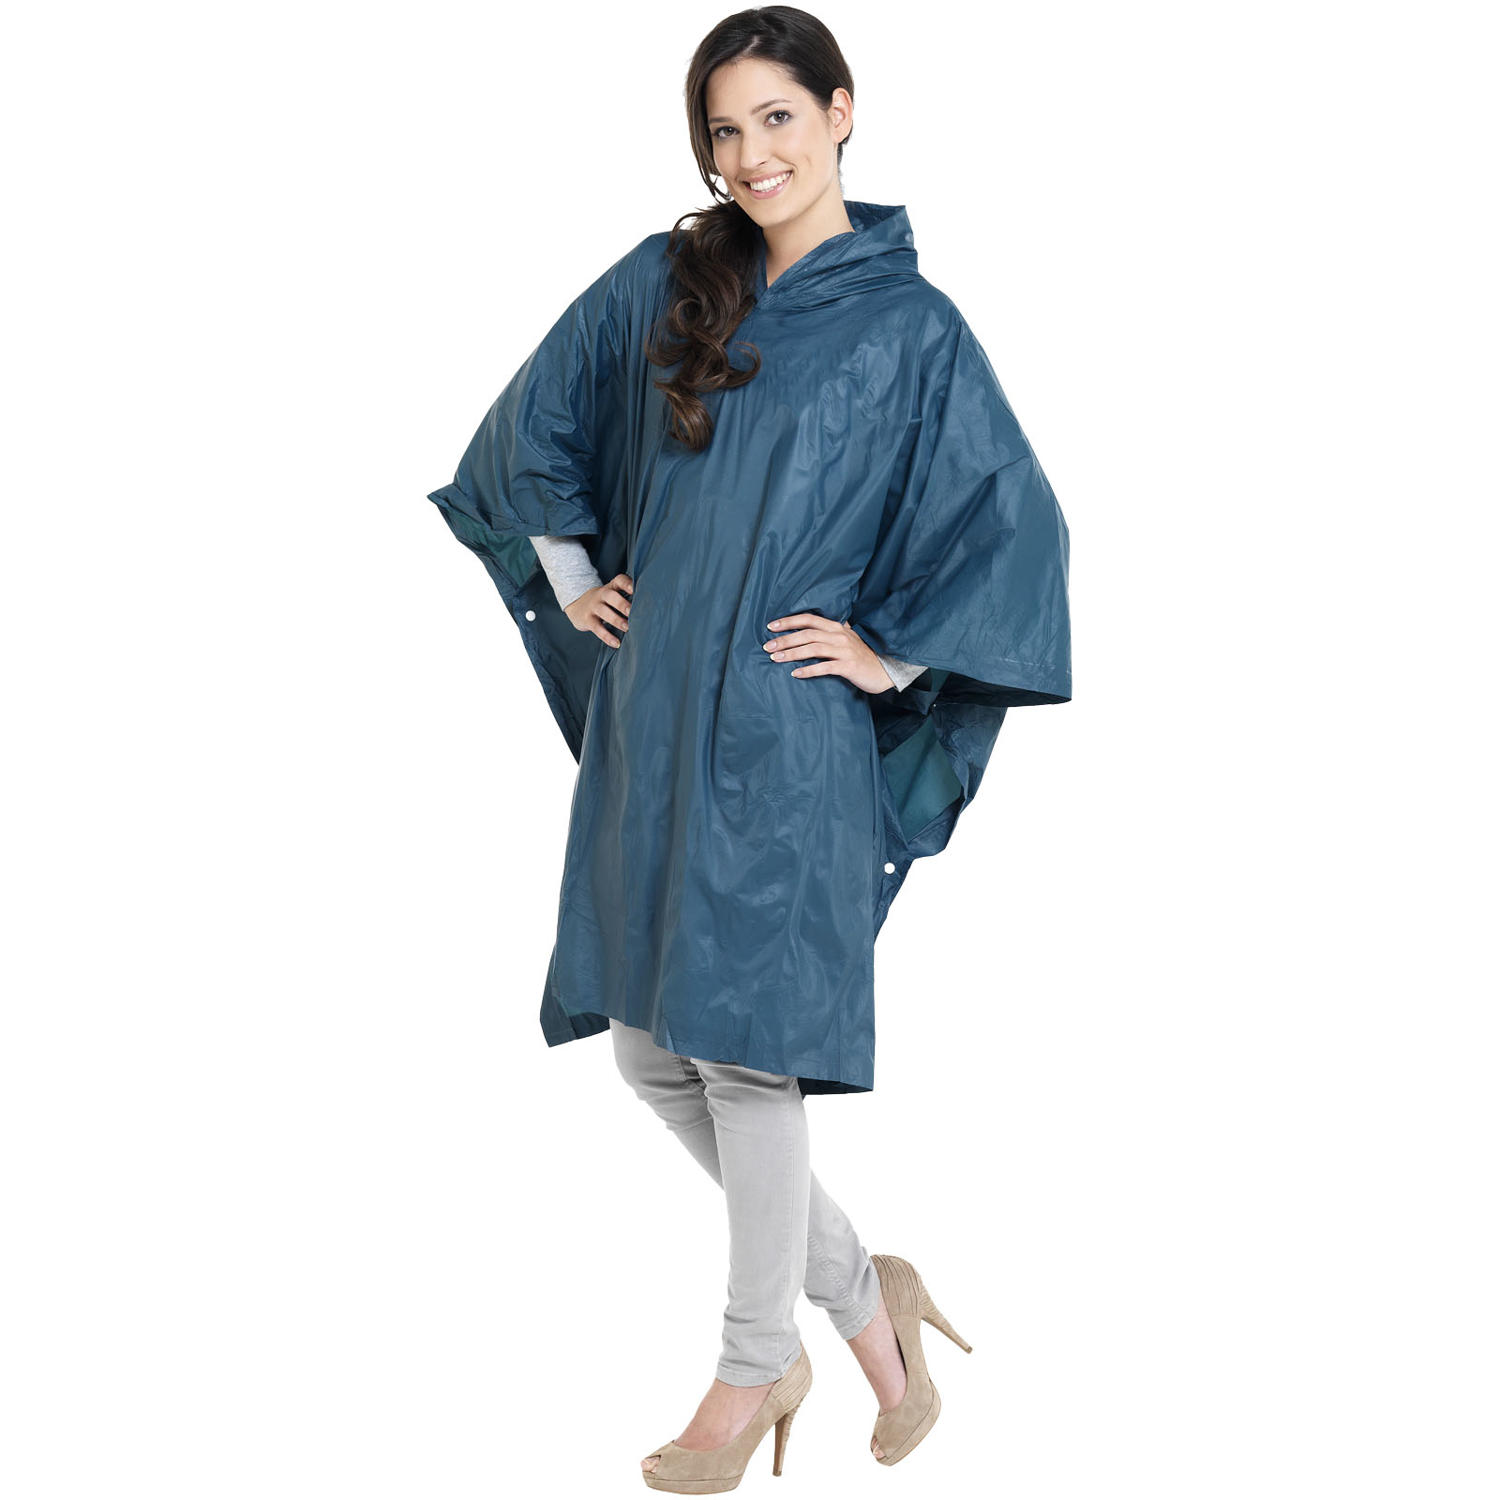 Pilar Adjustable Rain Poncho With Storage Pouch